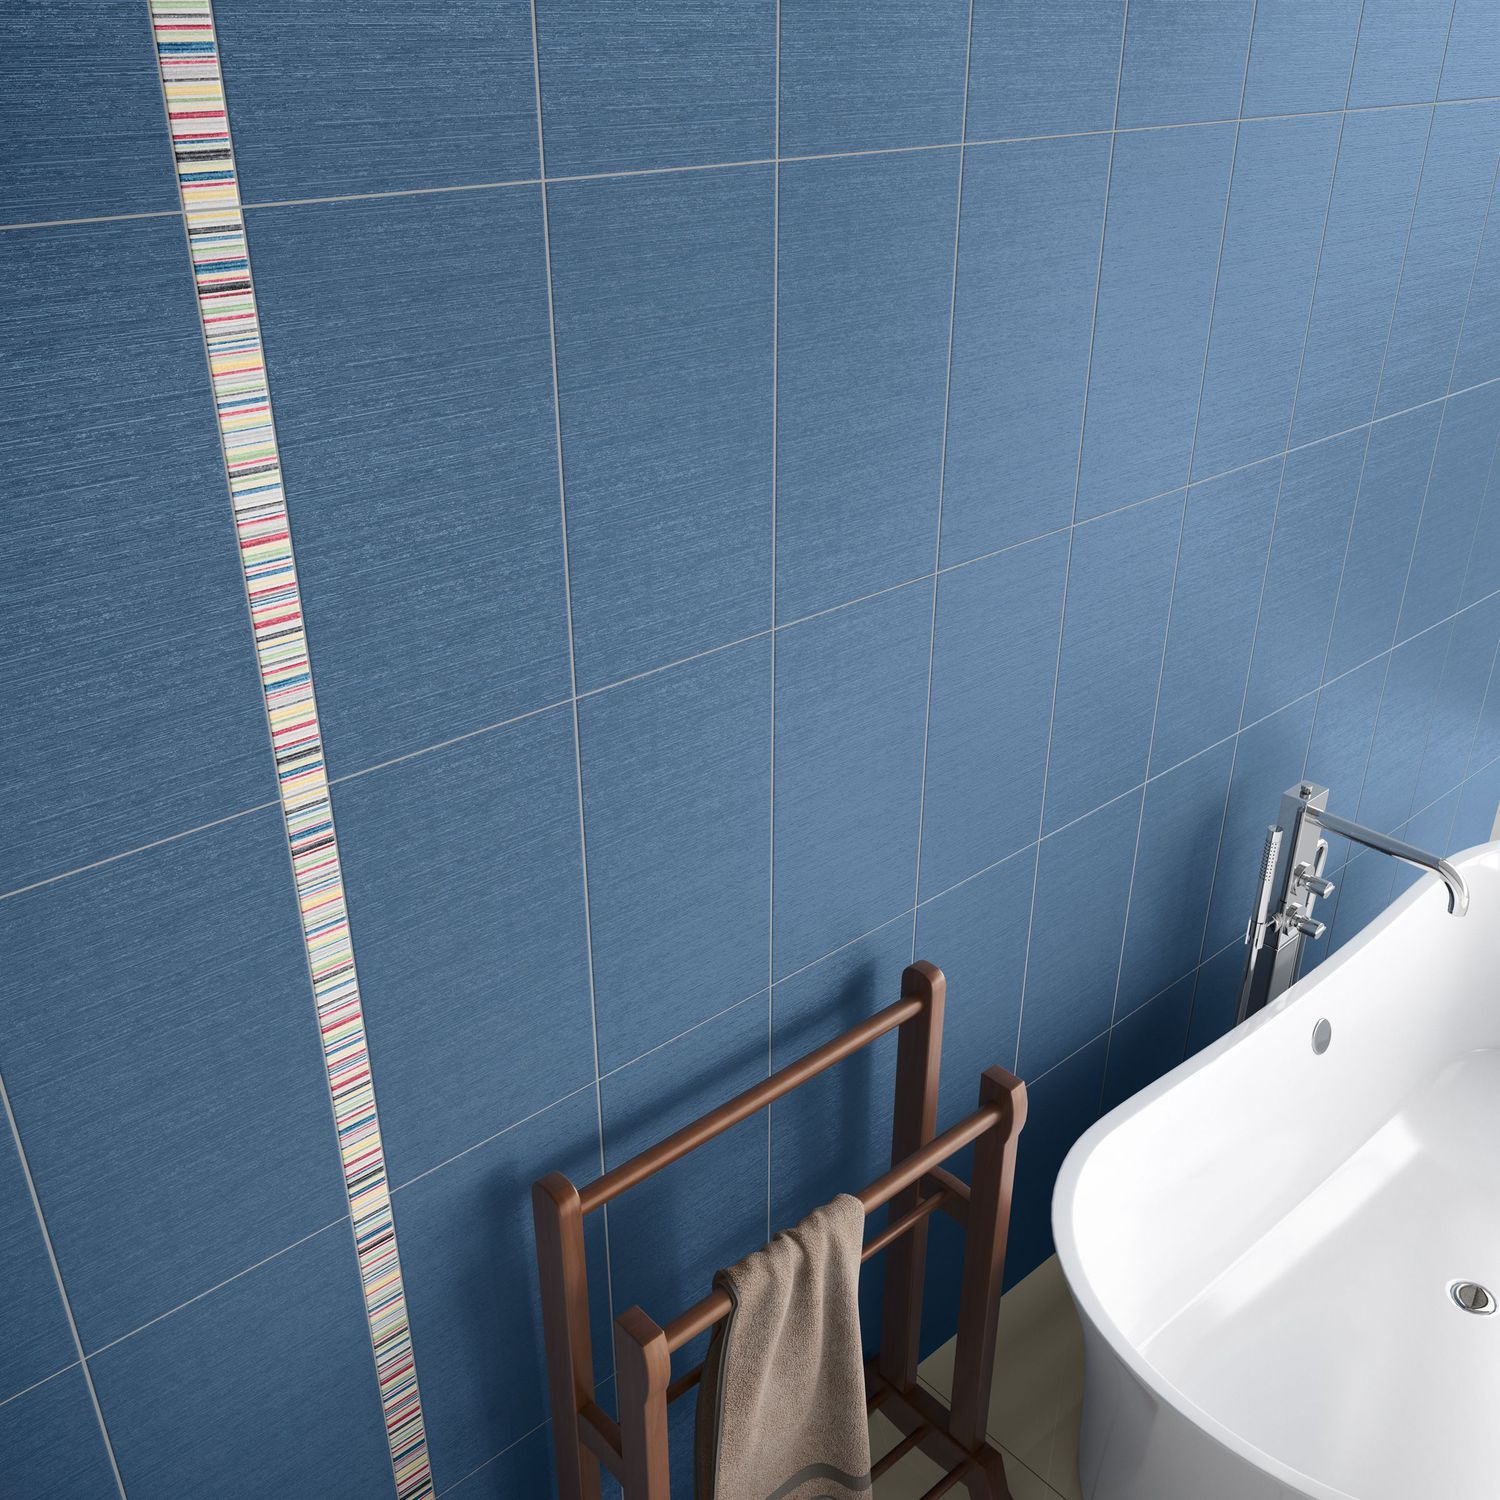 Bathroom tile / wall / porcelain stoneware / patterned - PARIS ...